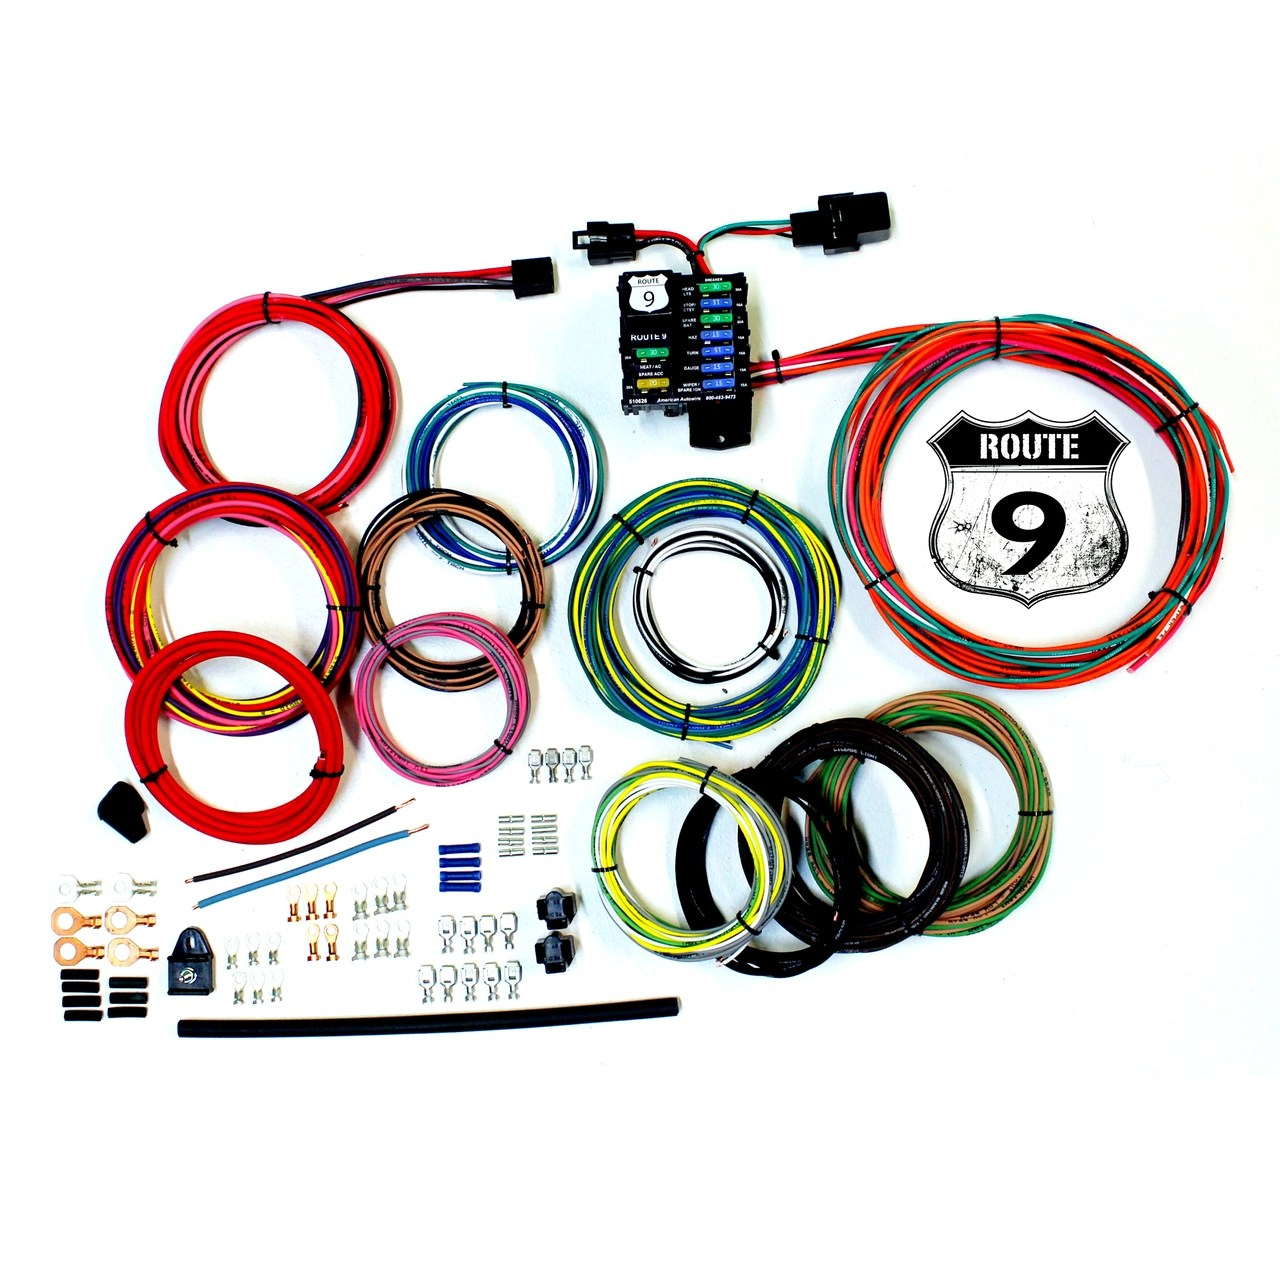 small resolution of american autowire route 9 universal wiring kit so cal speed shop az aftermarket wiring kits american autowire toggle turn signal switch